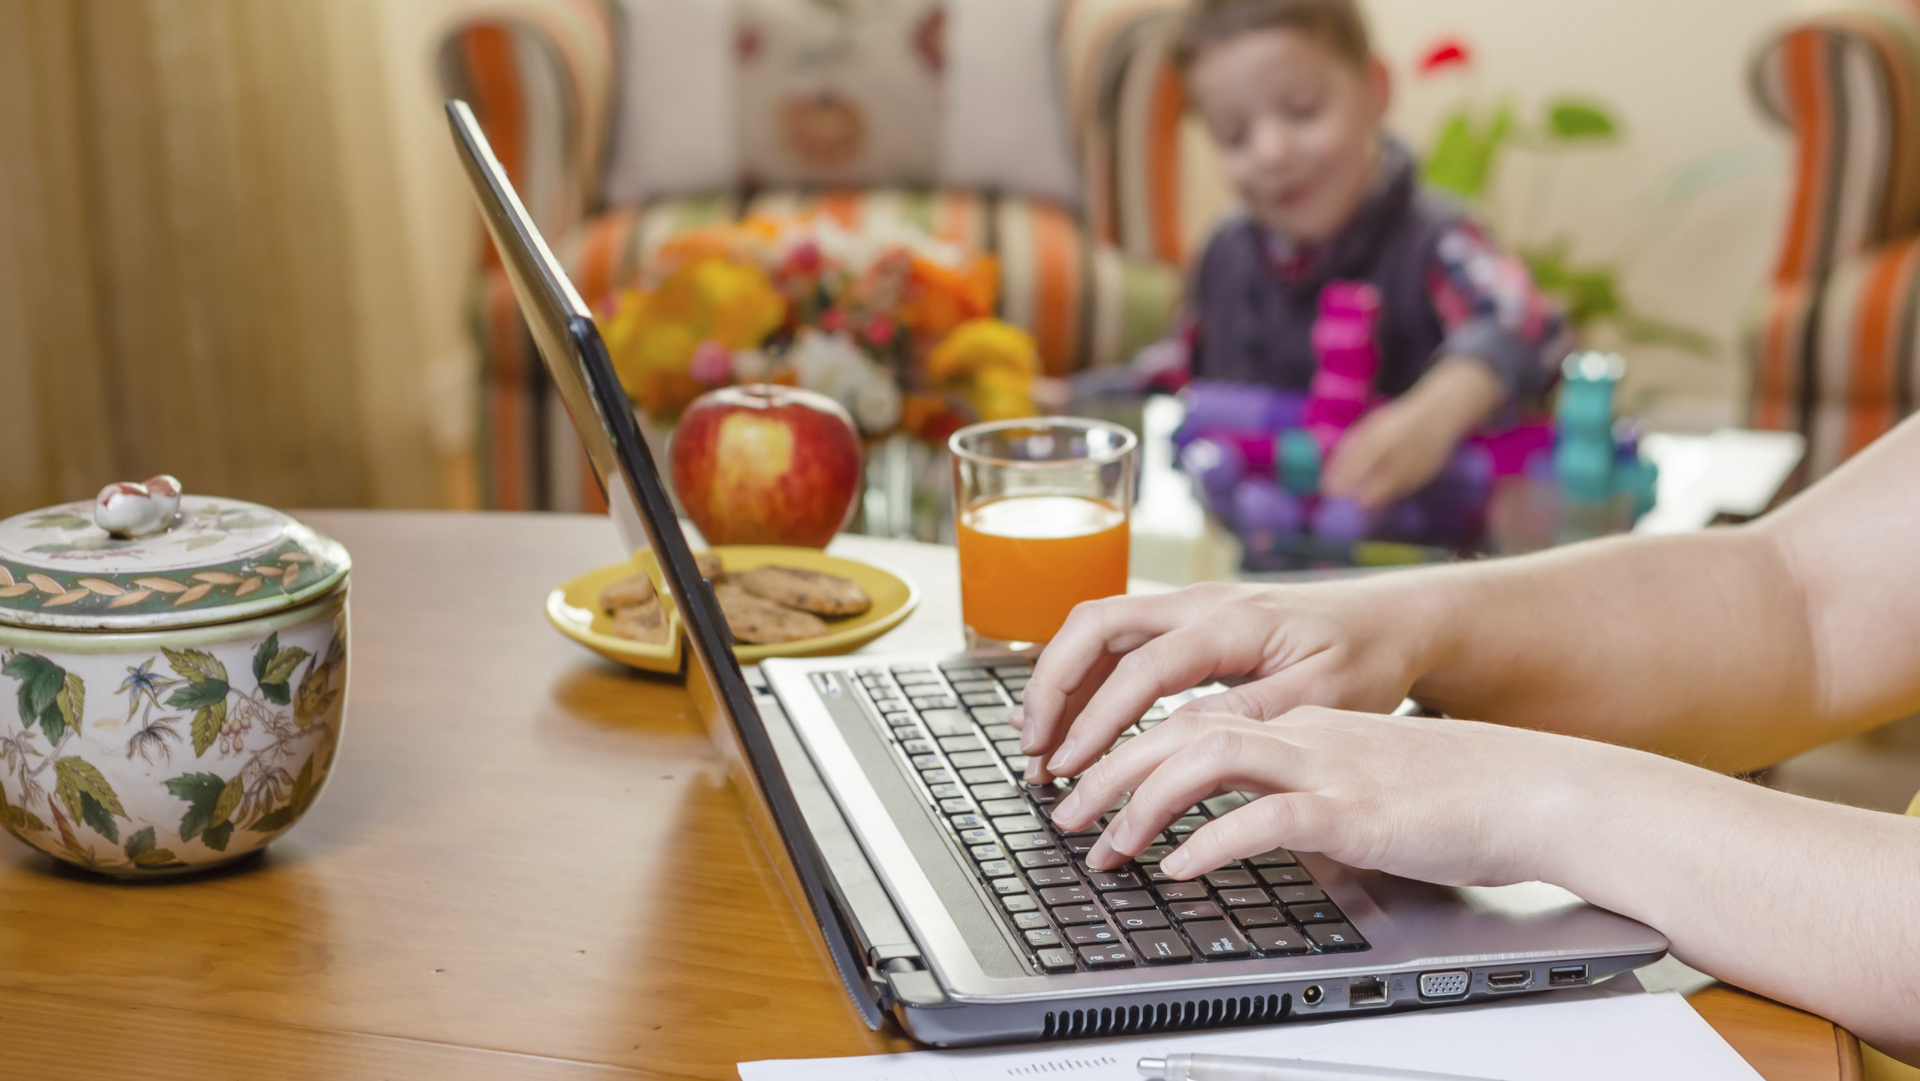 Work from home employment opportunities, any ideas?